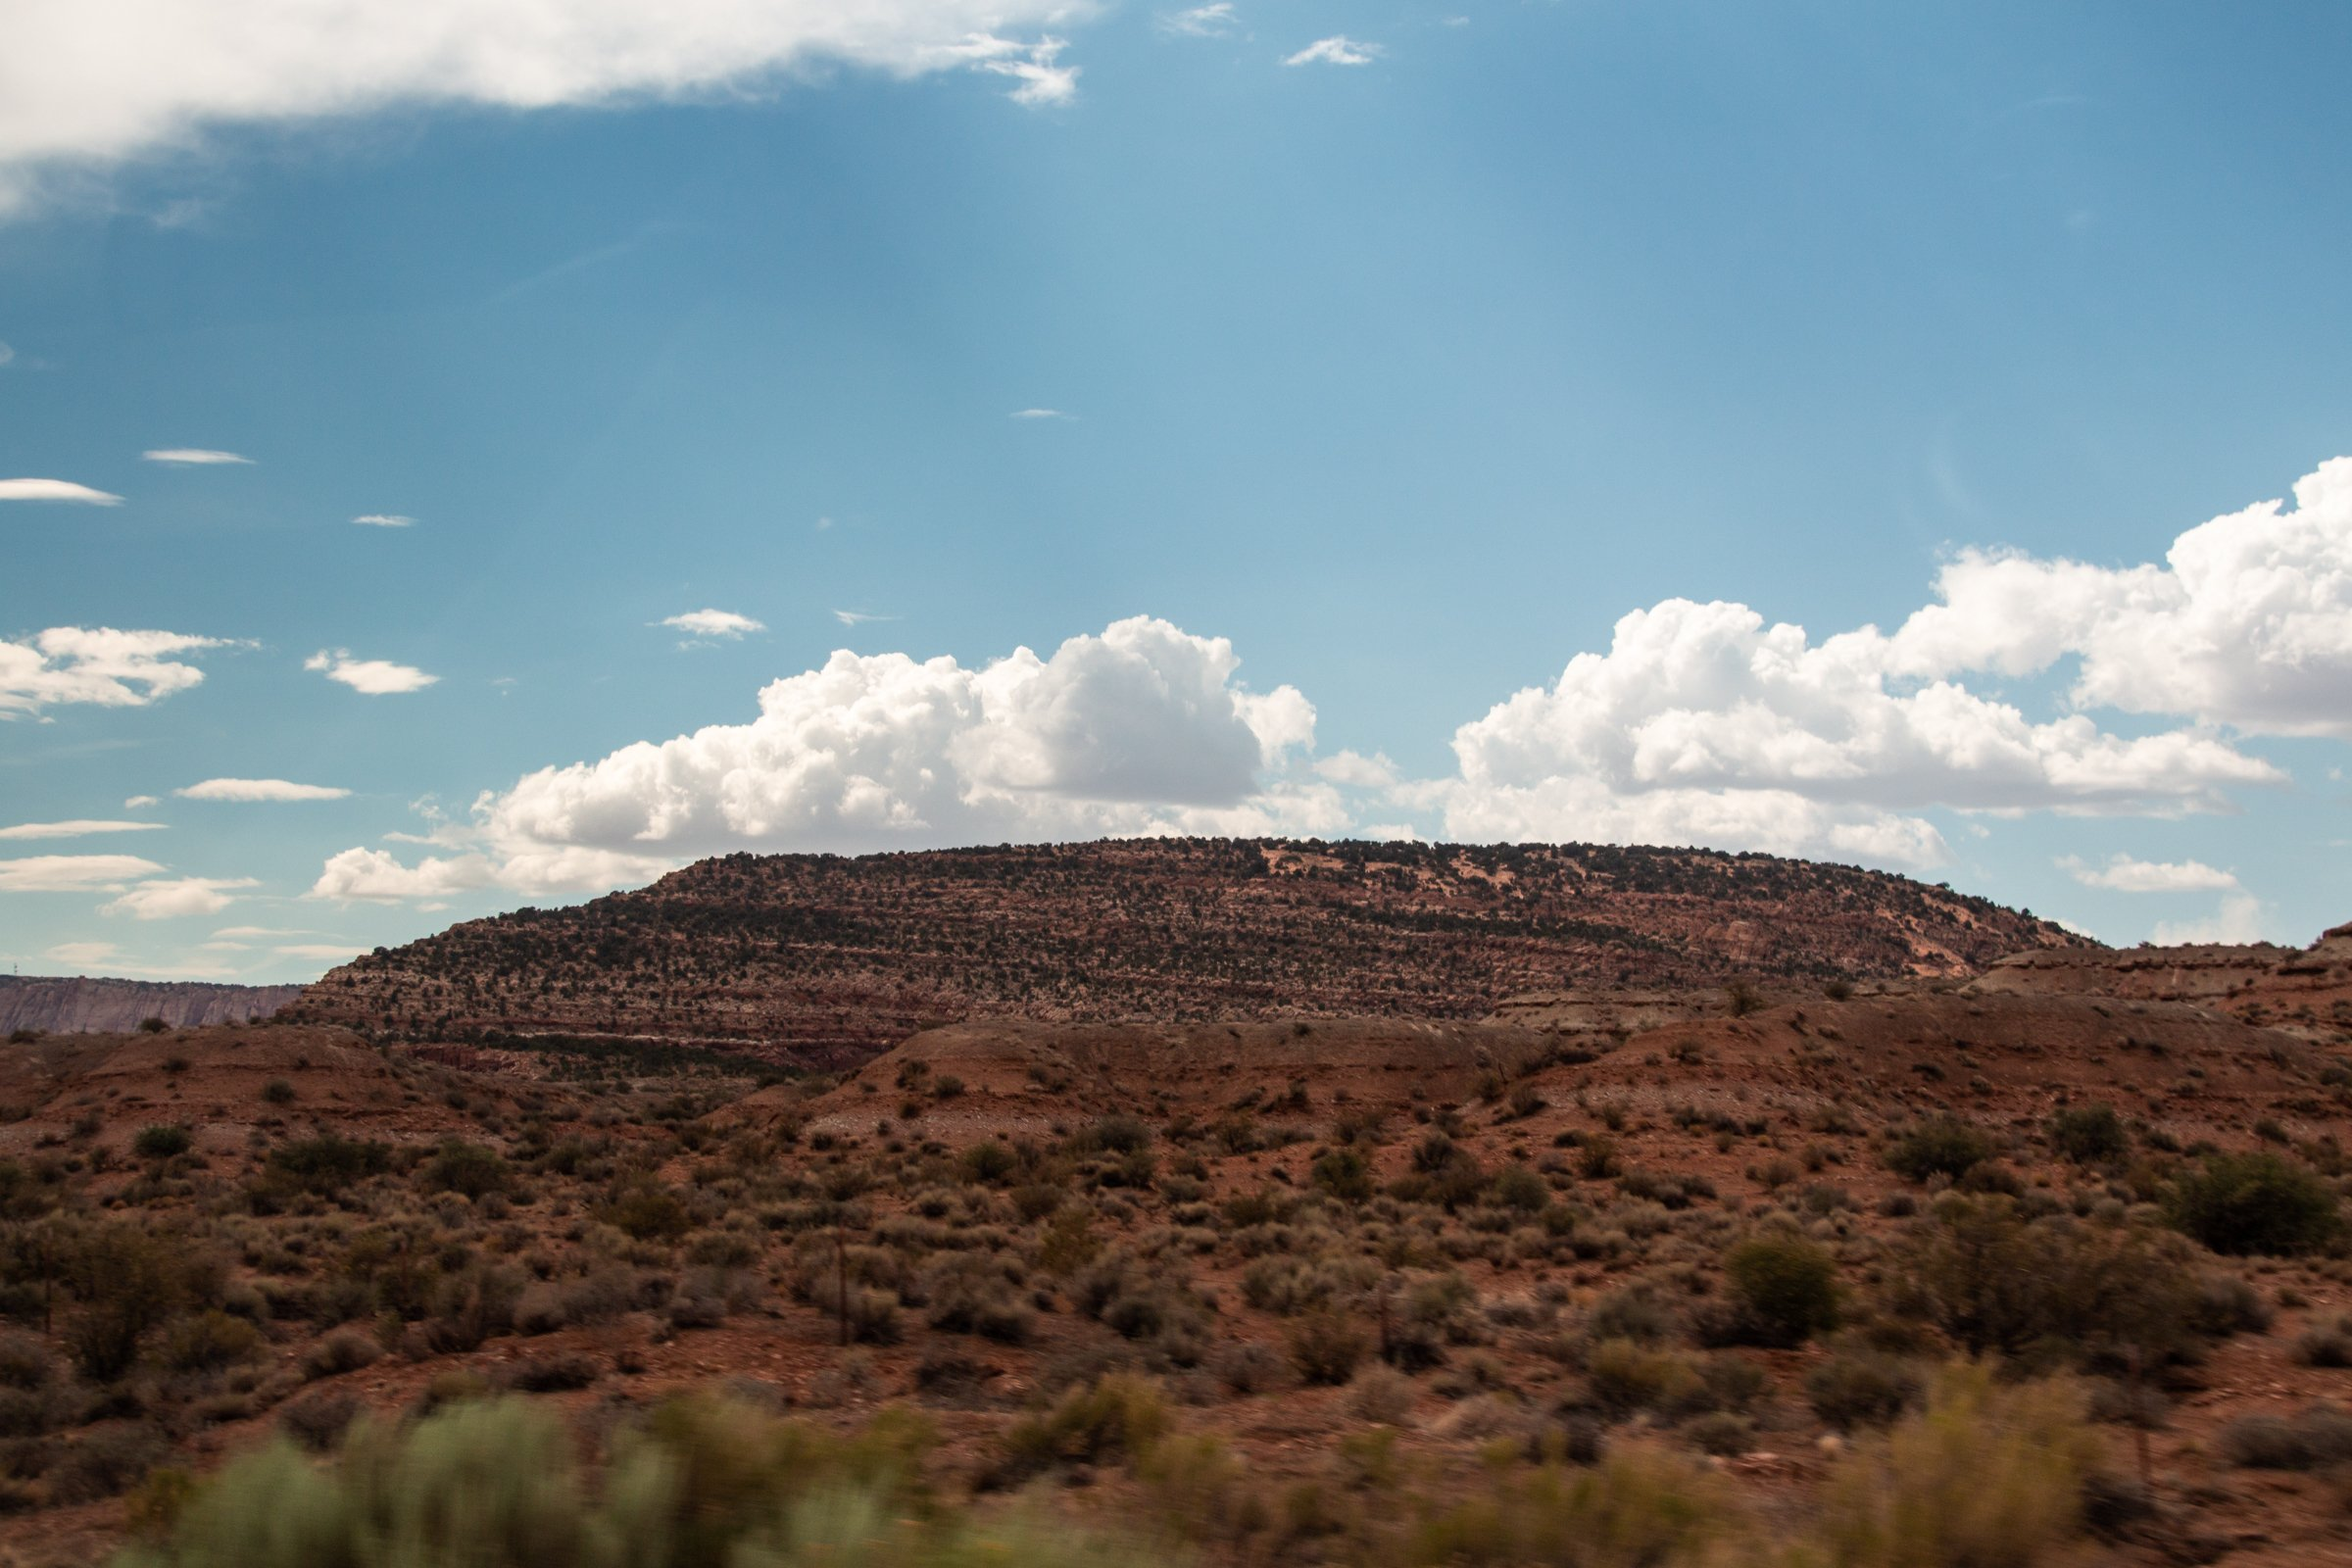 White Clouds Above Mountain In Desert